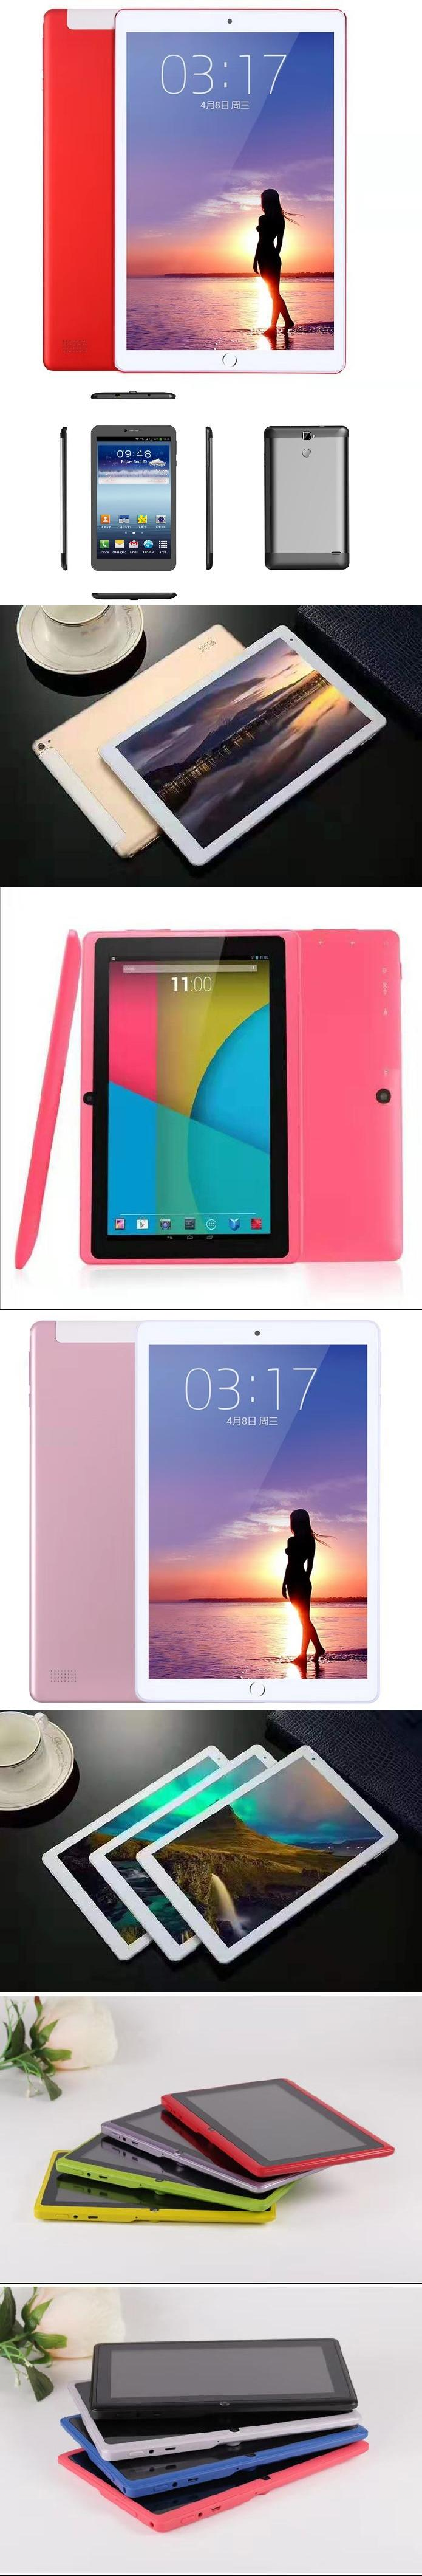 China Made Cheap Price 8gb ram tablet pc 7inch android